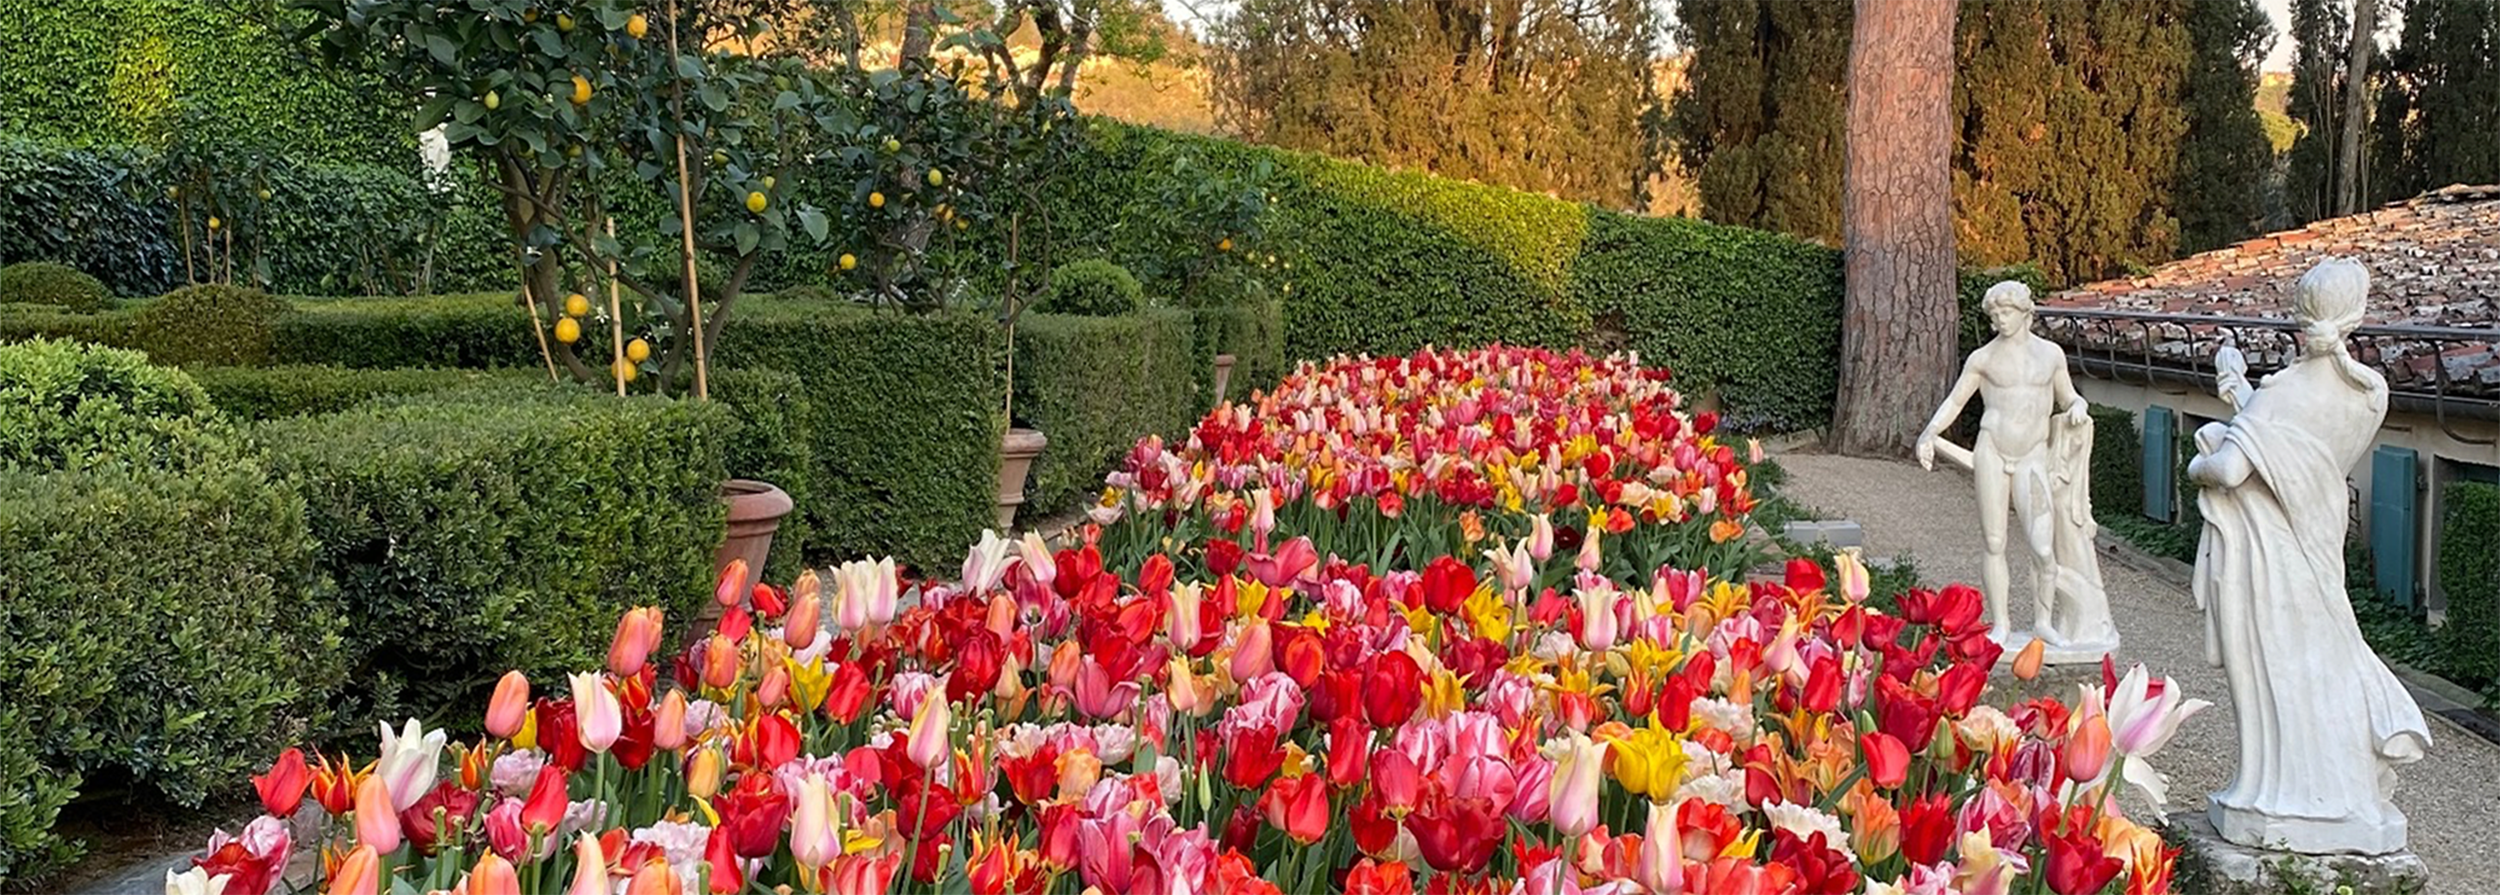 Image of the I Tatti garden with tulips